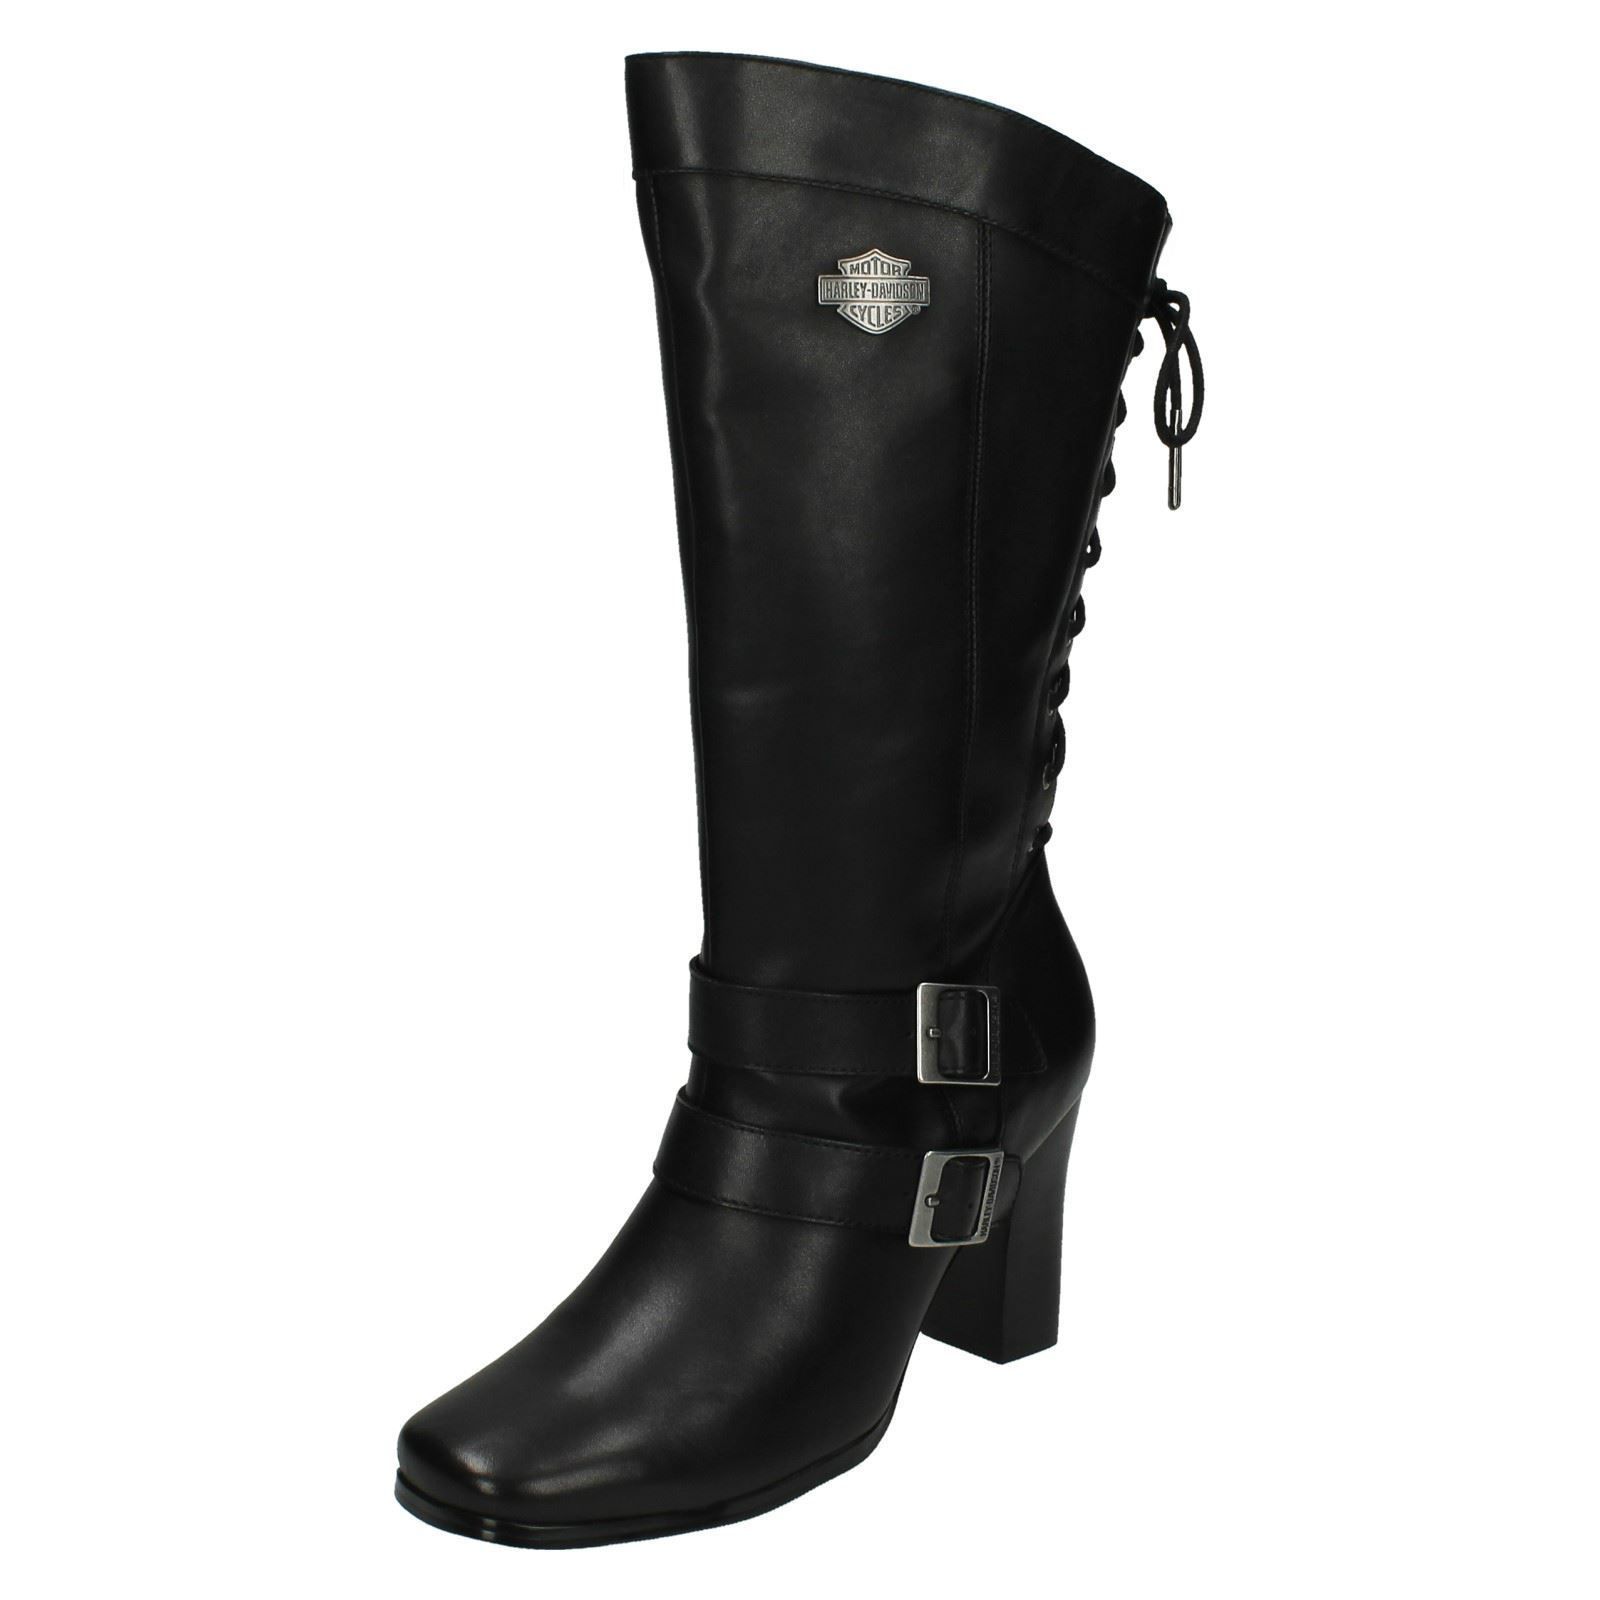 damen harley davidson biker boots 39 shelia 39 ebay. Black Bedroom Furniture Sets. Home Design Ideas